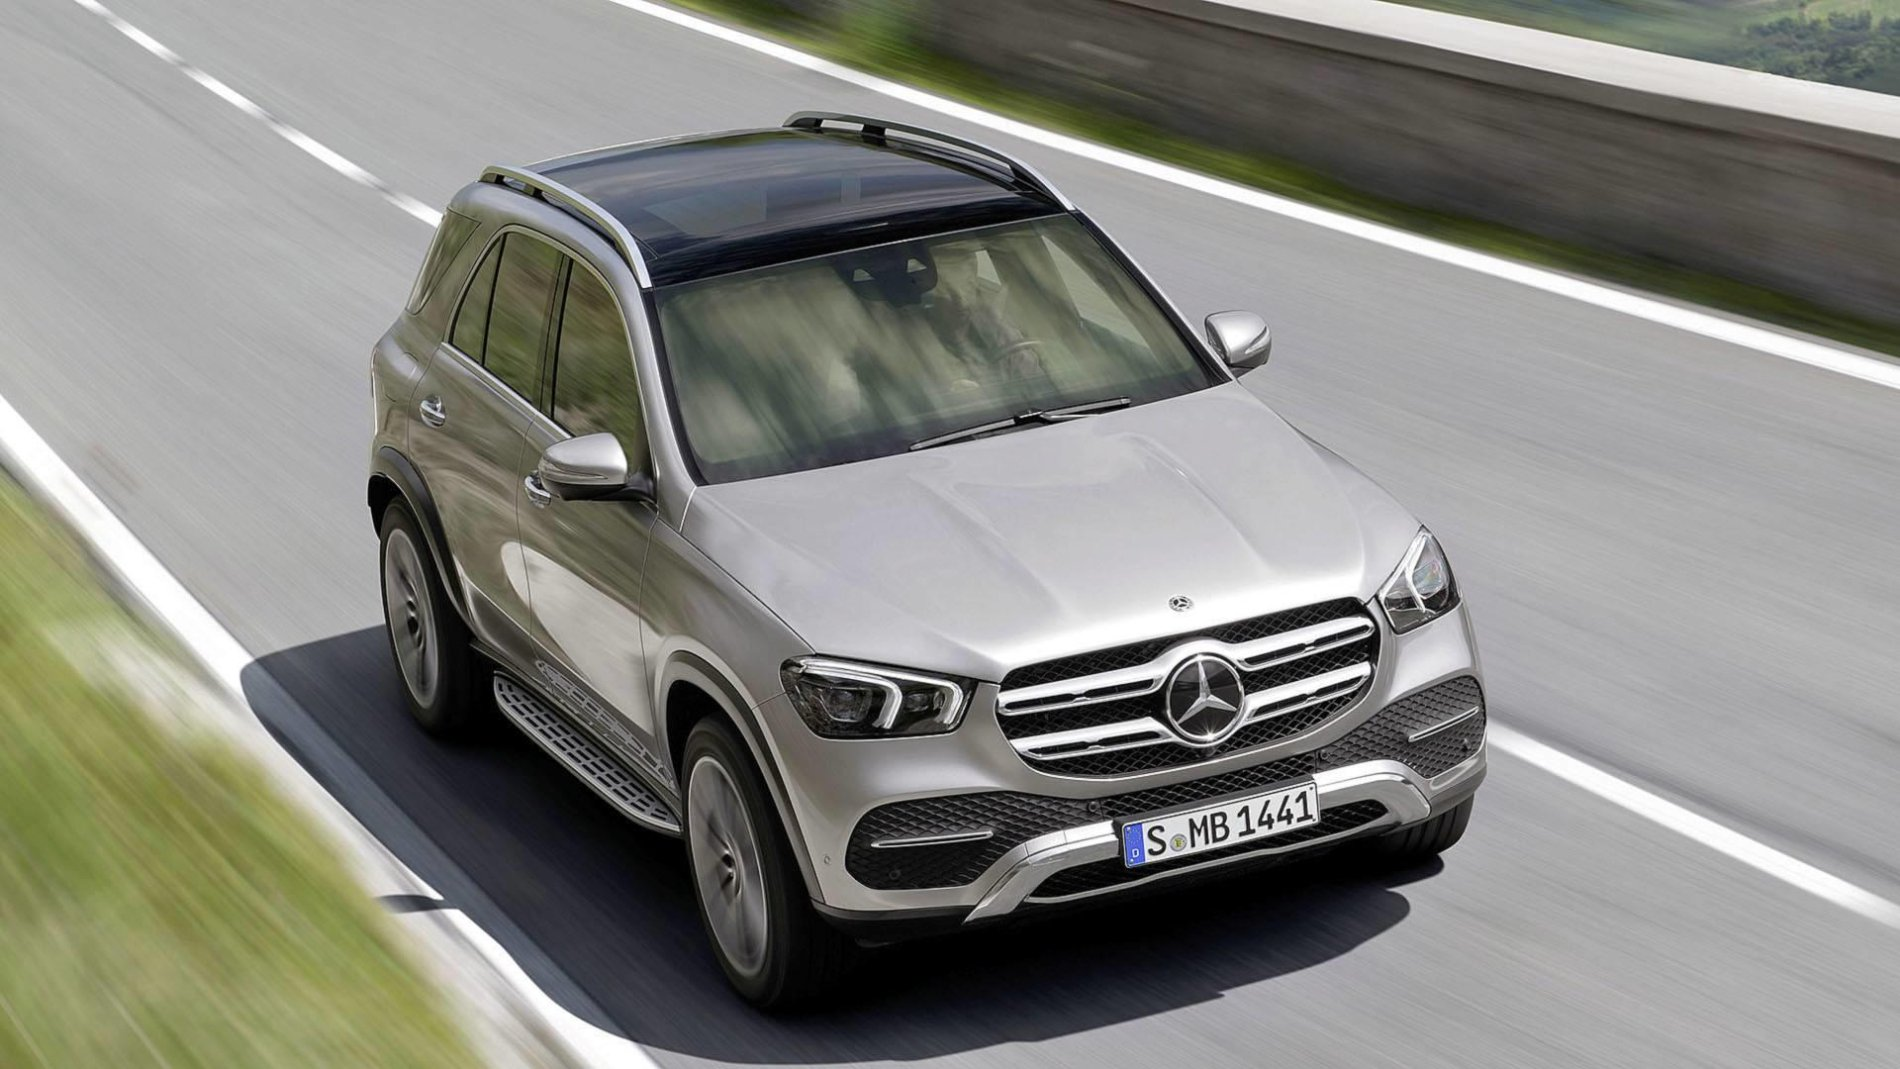 2019 Mercedes-Benz GLE - 2019 Mercedes-Benz GLE